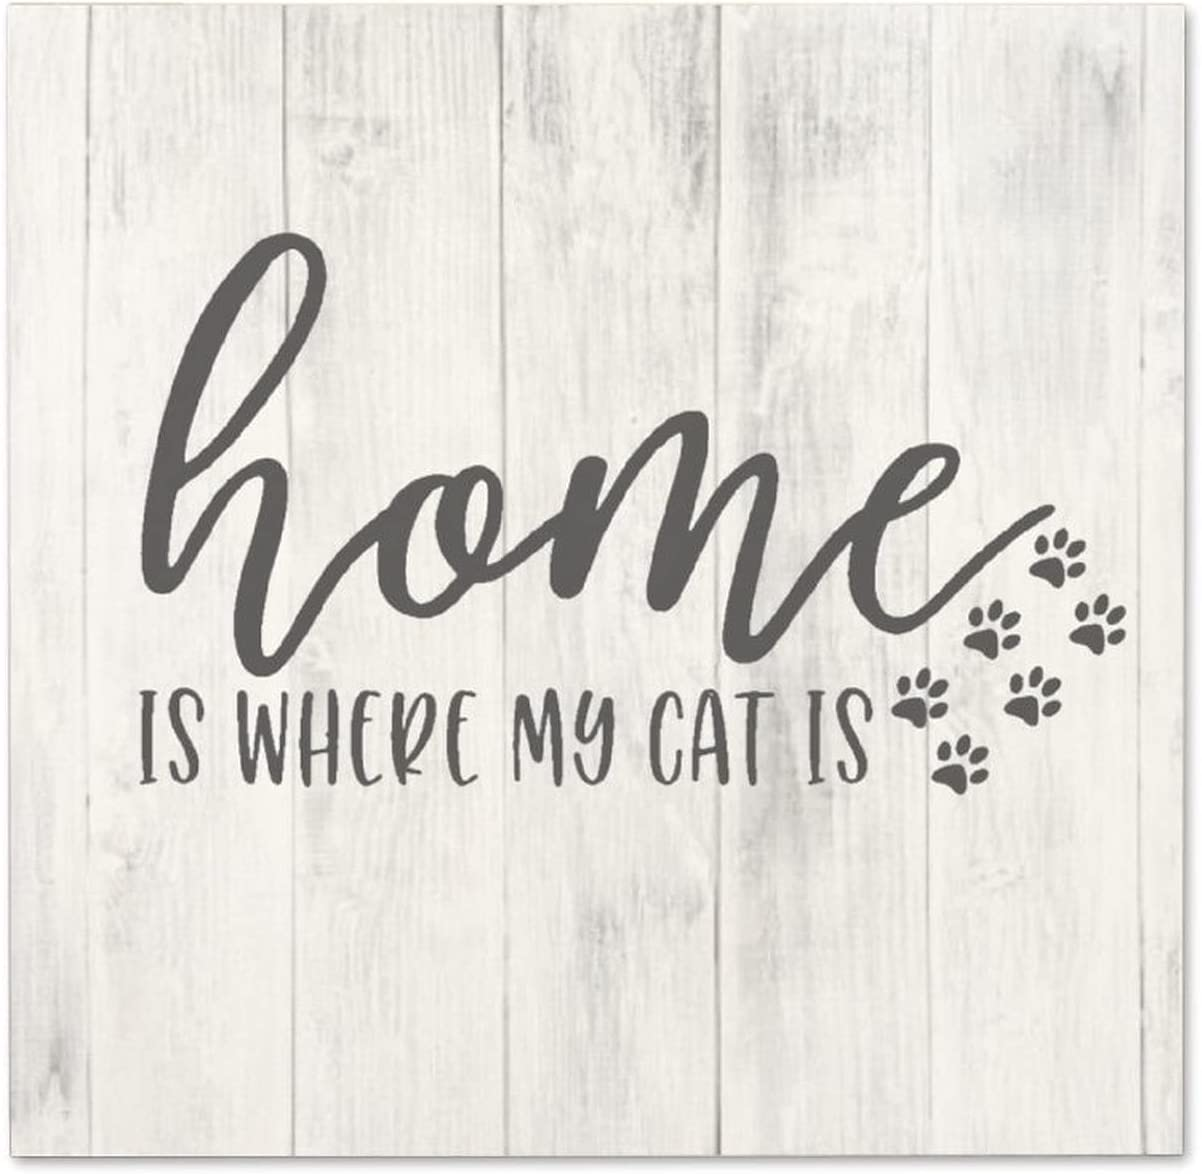 Free Brand Rustic Torched Wood Sign for Home Decor Farmhouse Sign for Kitchen Wooden Sign Table Decor Wooden Sign Home is Where My Cat is 12x12 Inch